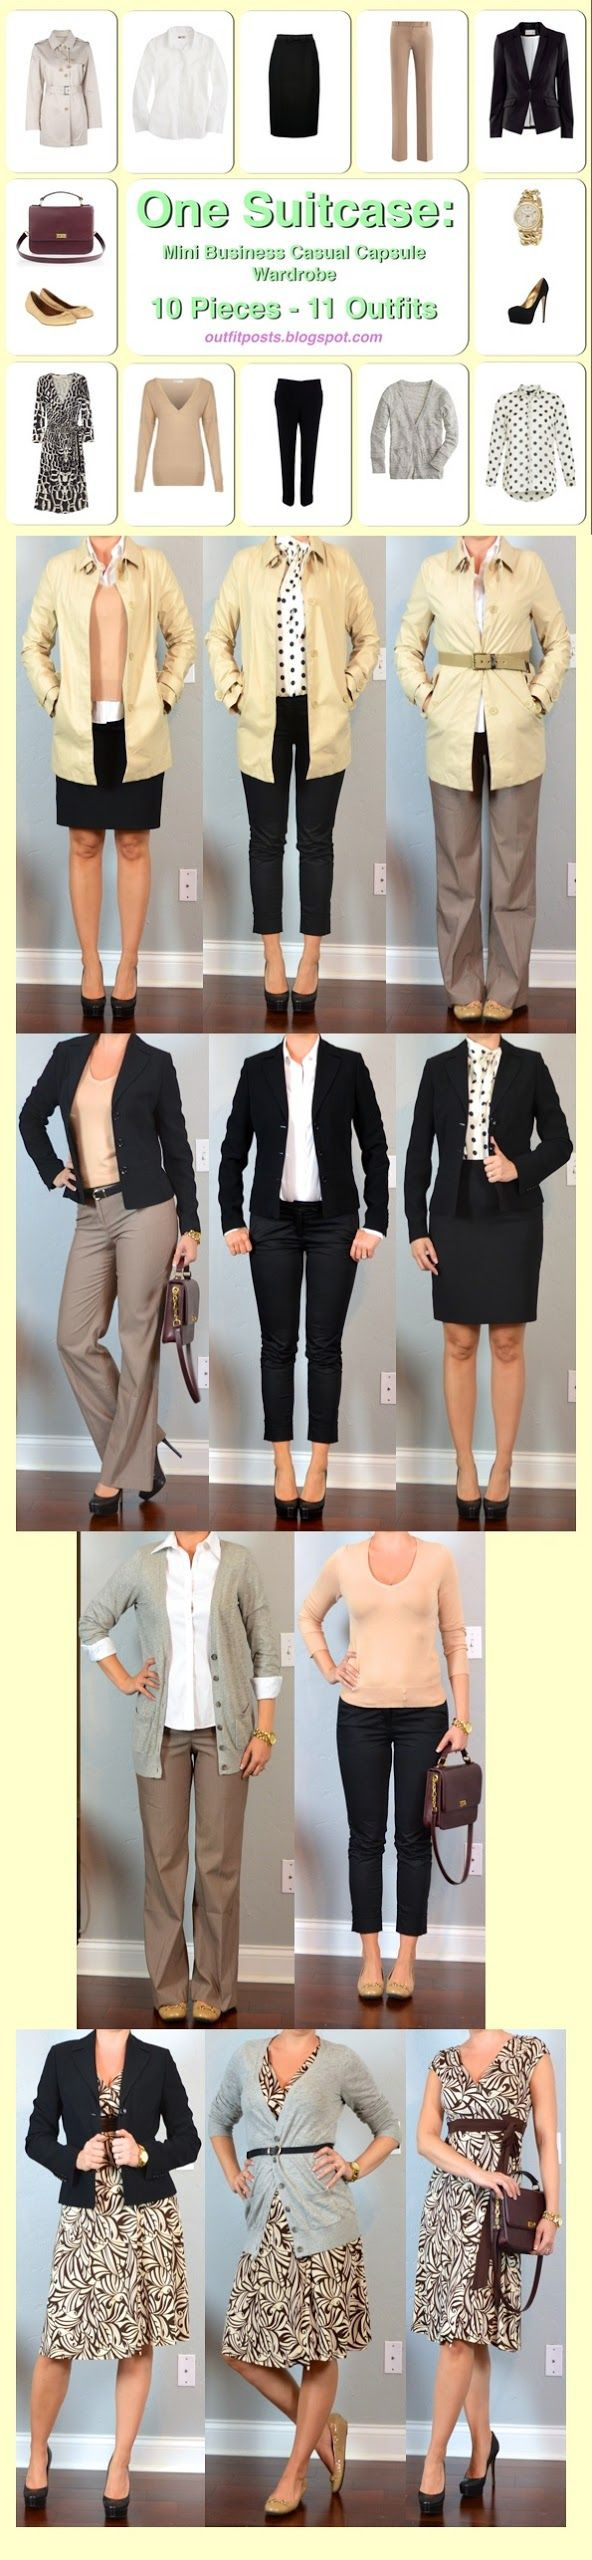 Outfit Posts: one suitcase: mini business casual capsule wardrobe